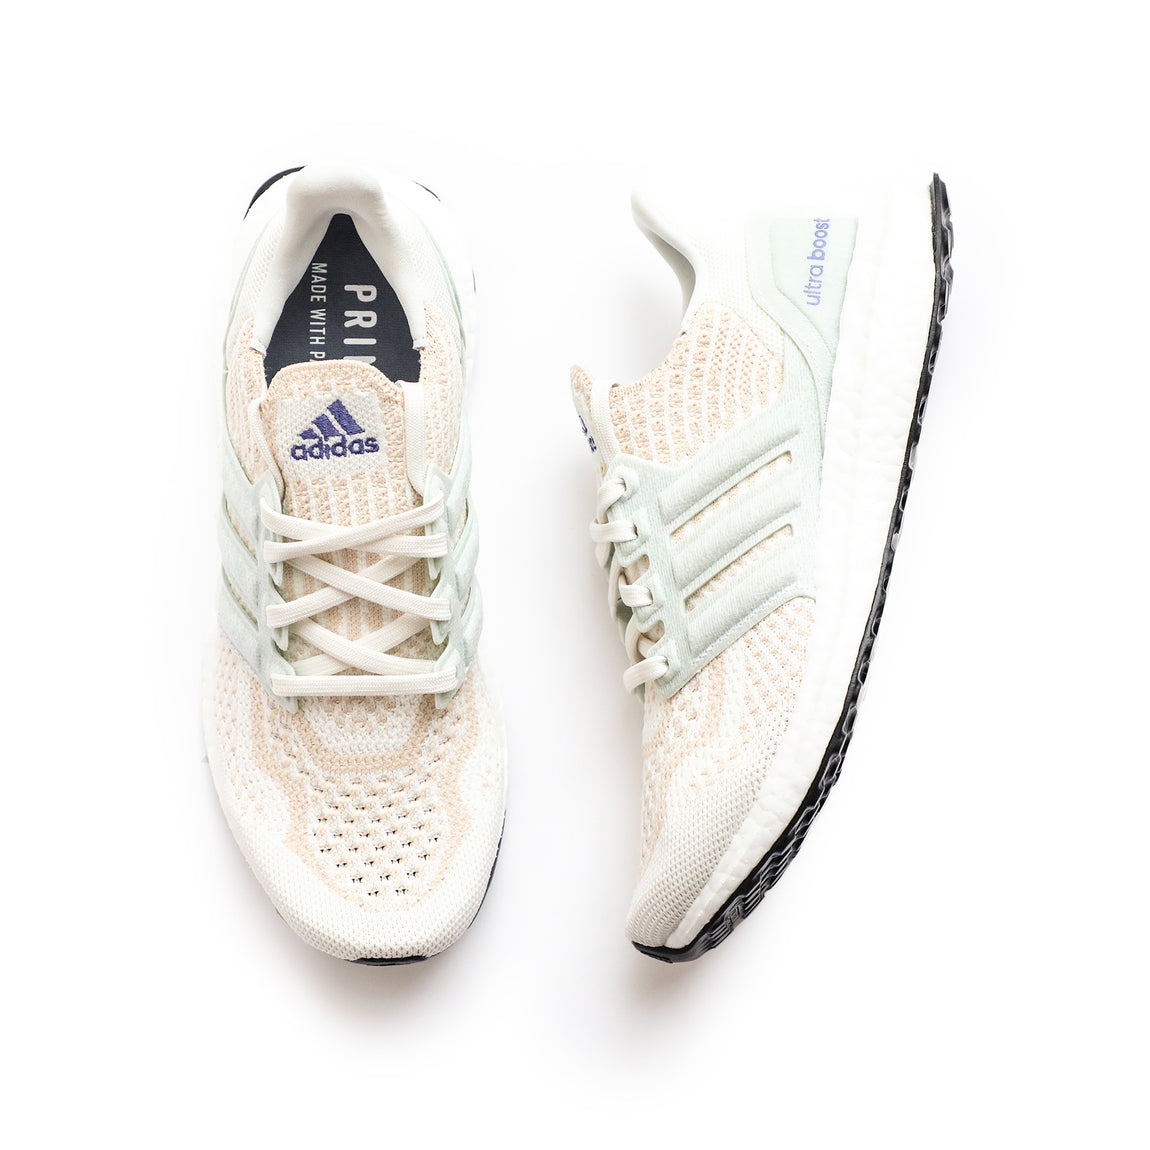 Adidas Women's Ultraboost 6.0 DNA (Non Dyed/White-Halo Ivory) - Adidas Women's Ultraboost 6.0 DNA (Non Dyed/White-Halo Ivory) -